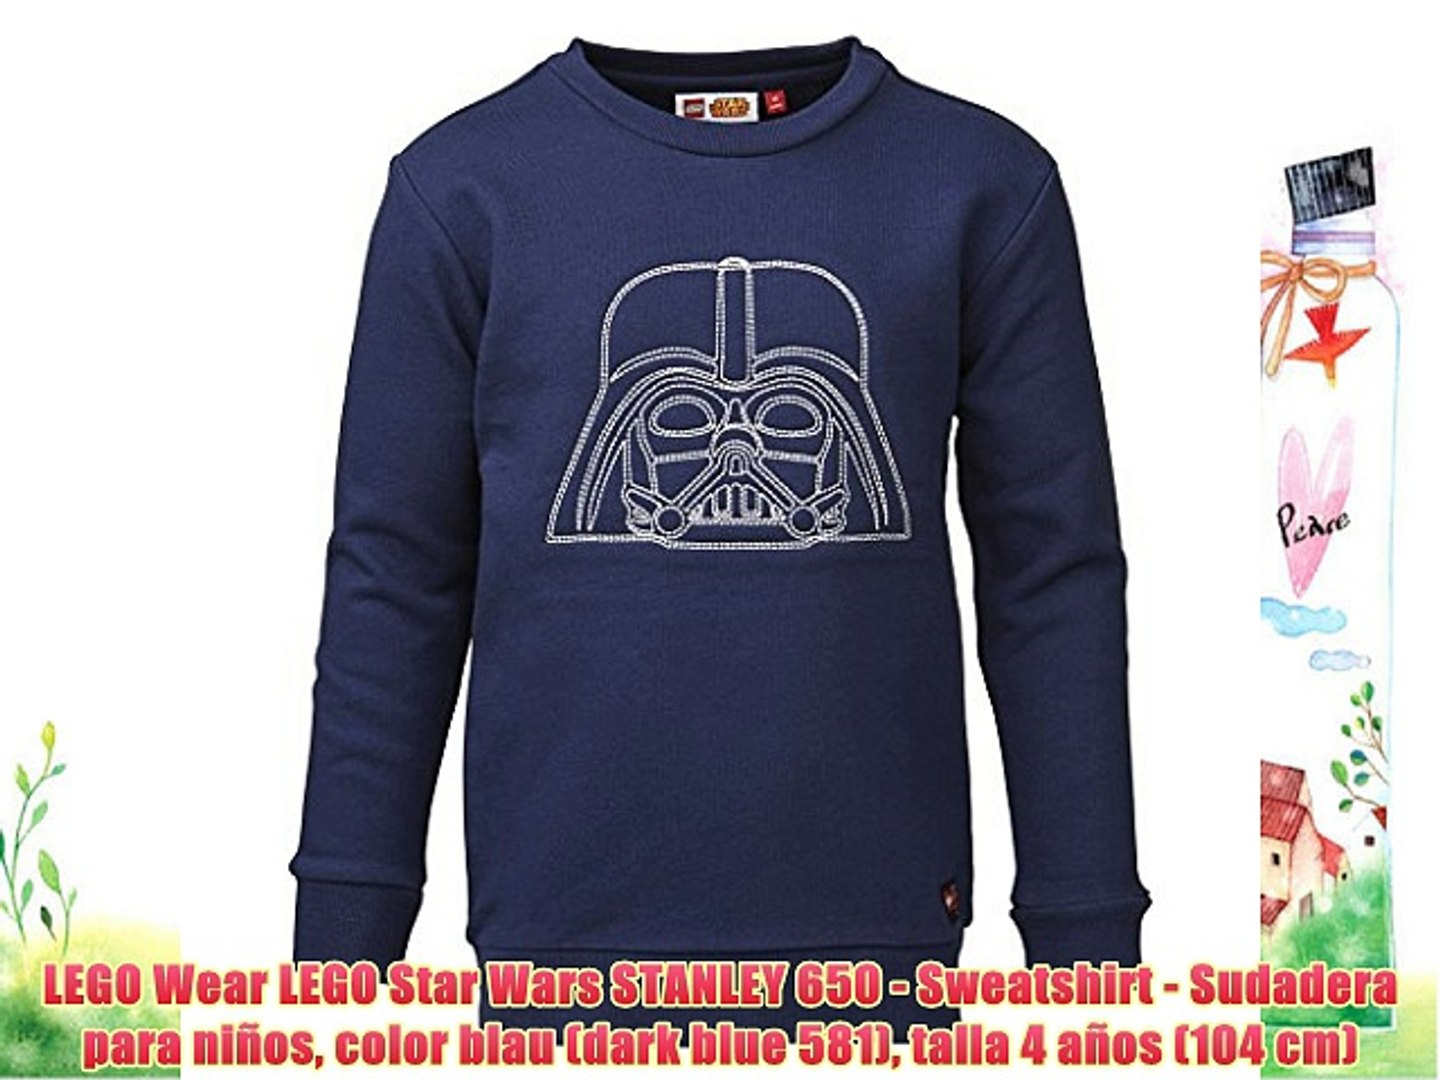 LEGO Wear LEGO Star Wars STANLEY 650 - Sweatshirt - Sudadera para niños color blau (dark blue